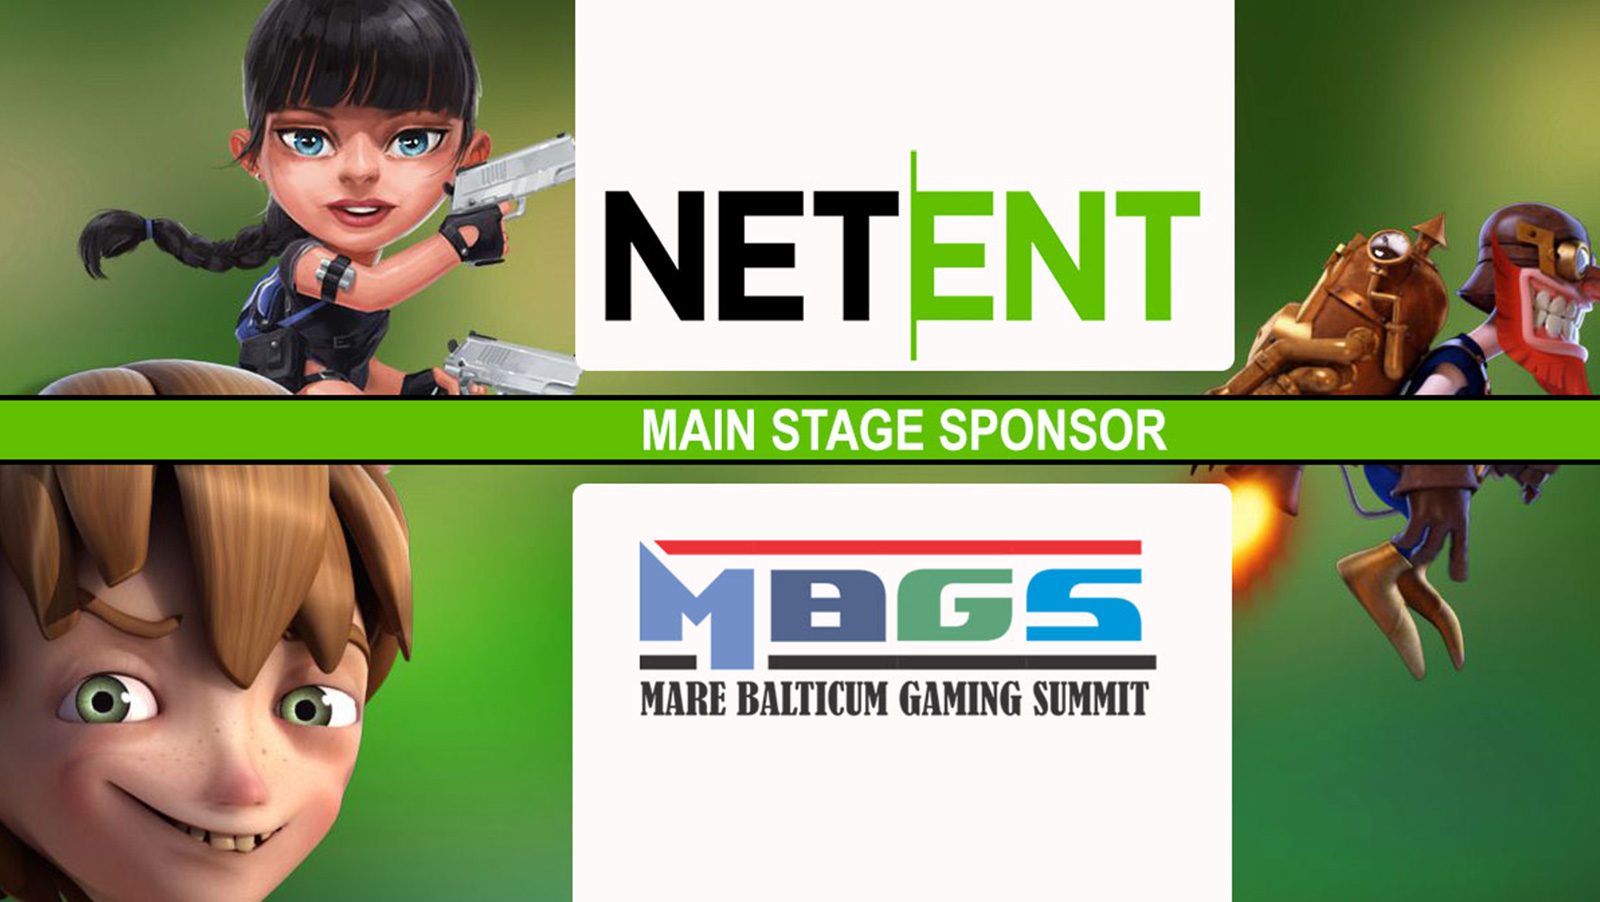 netent-announced-as-main-stage-sponsor-at-mare-balticum-gaming-summit-2019